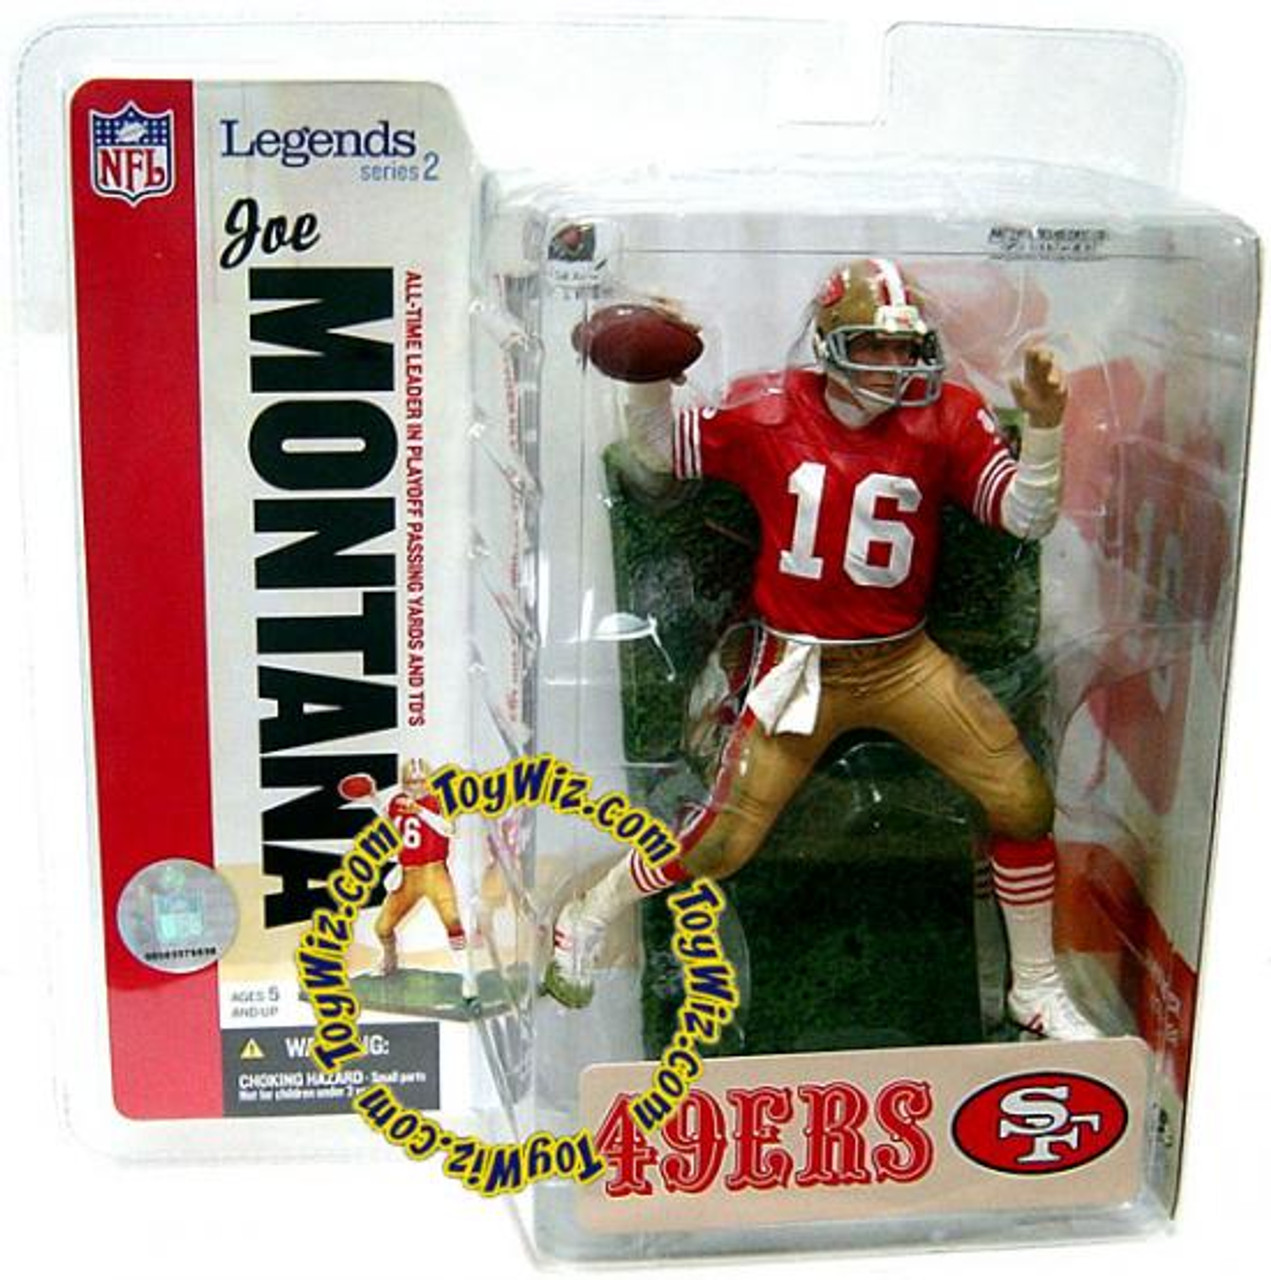 McFarlane Toys NFL San Francisco 49ers Sports Picks Legends Series 2 Joe Montana Action Figure [Red Jersey]